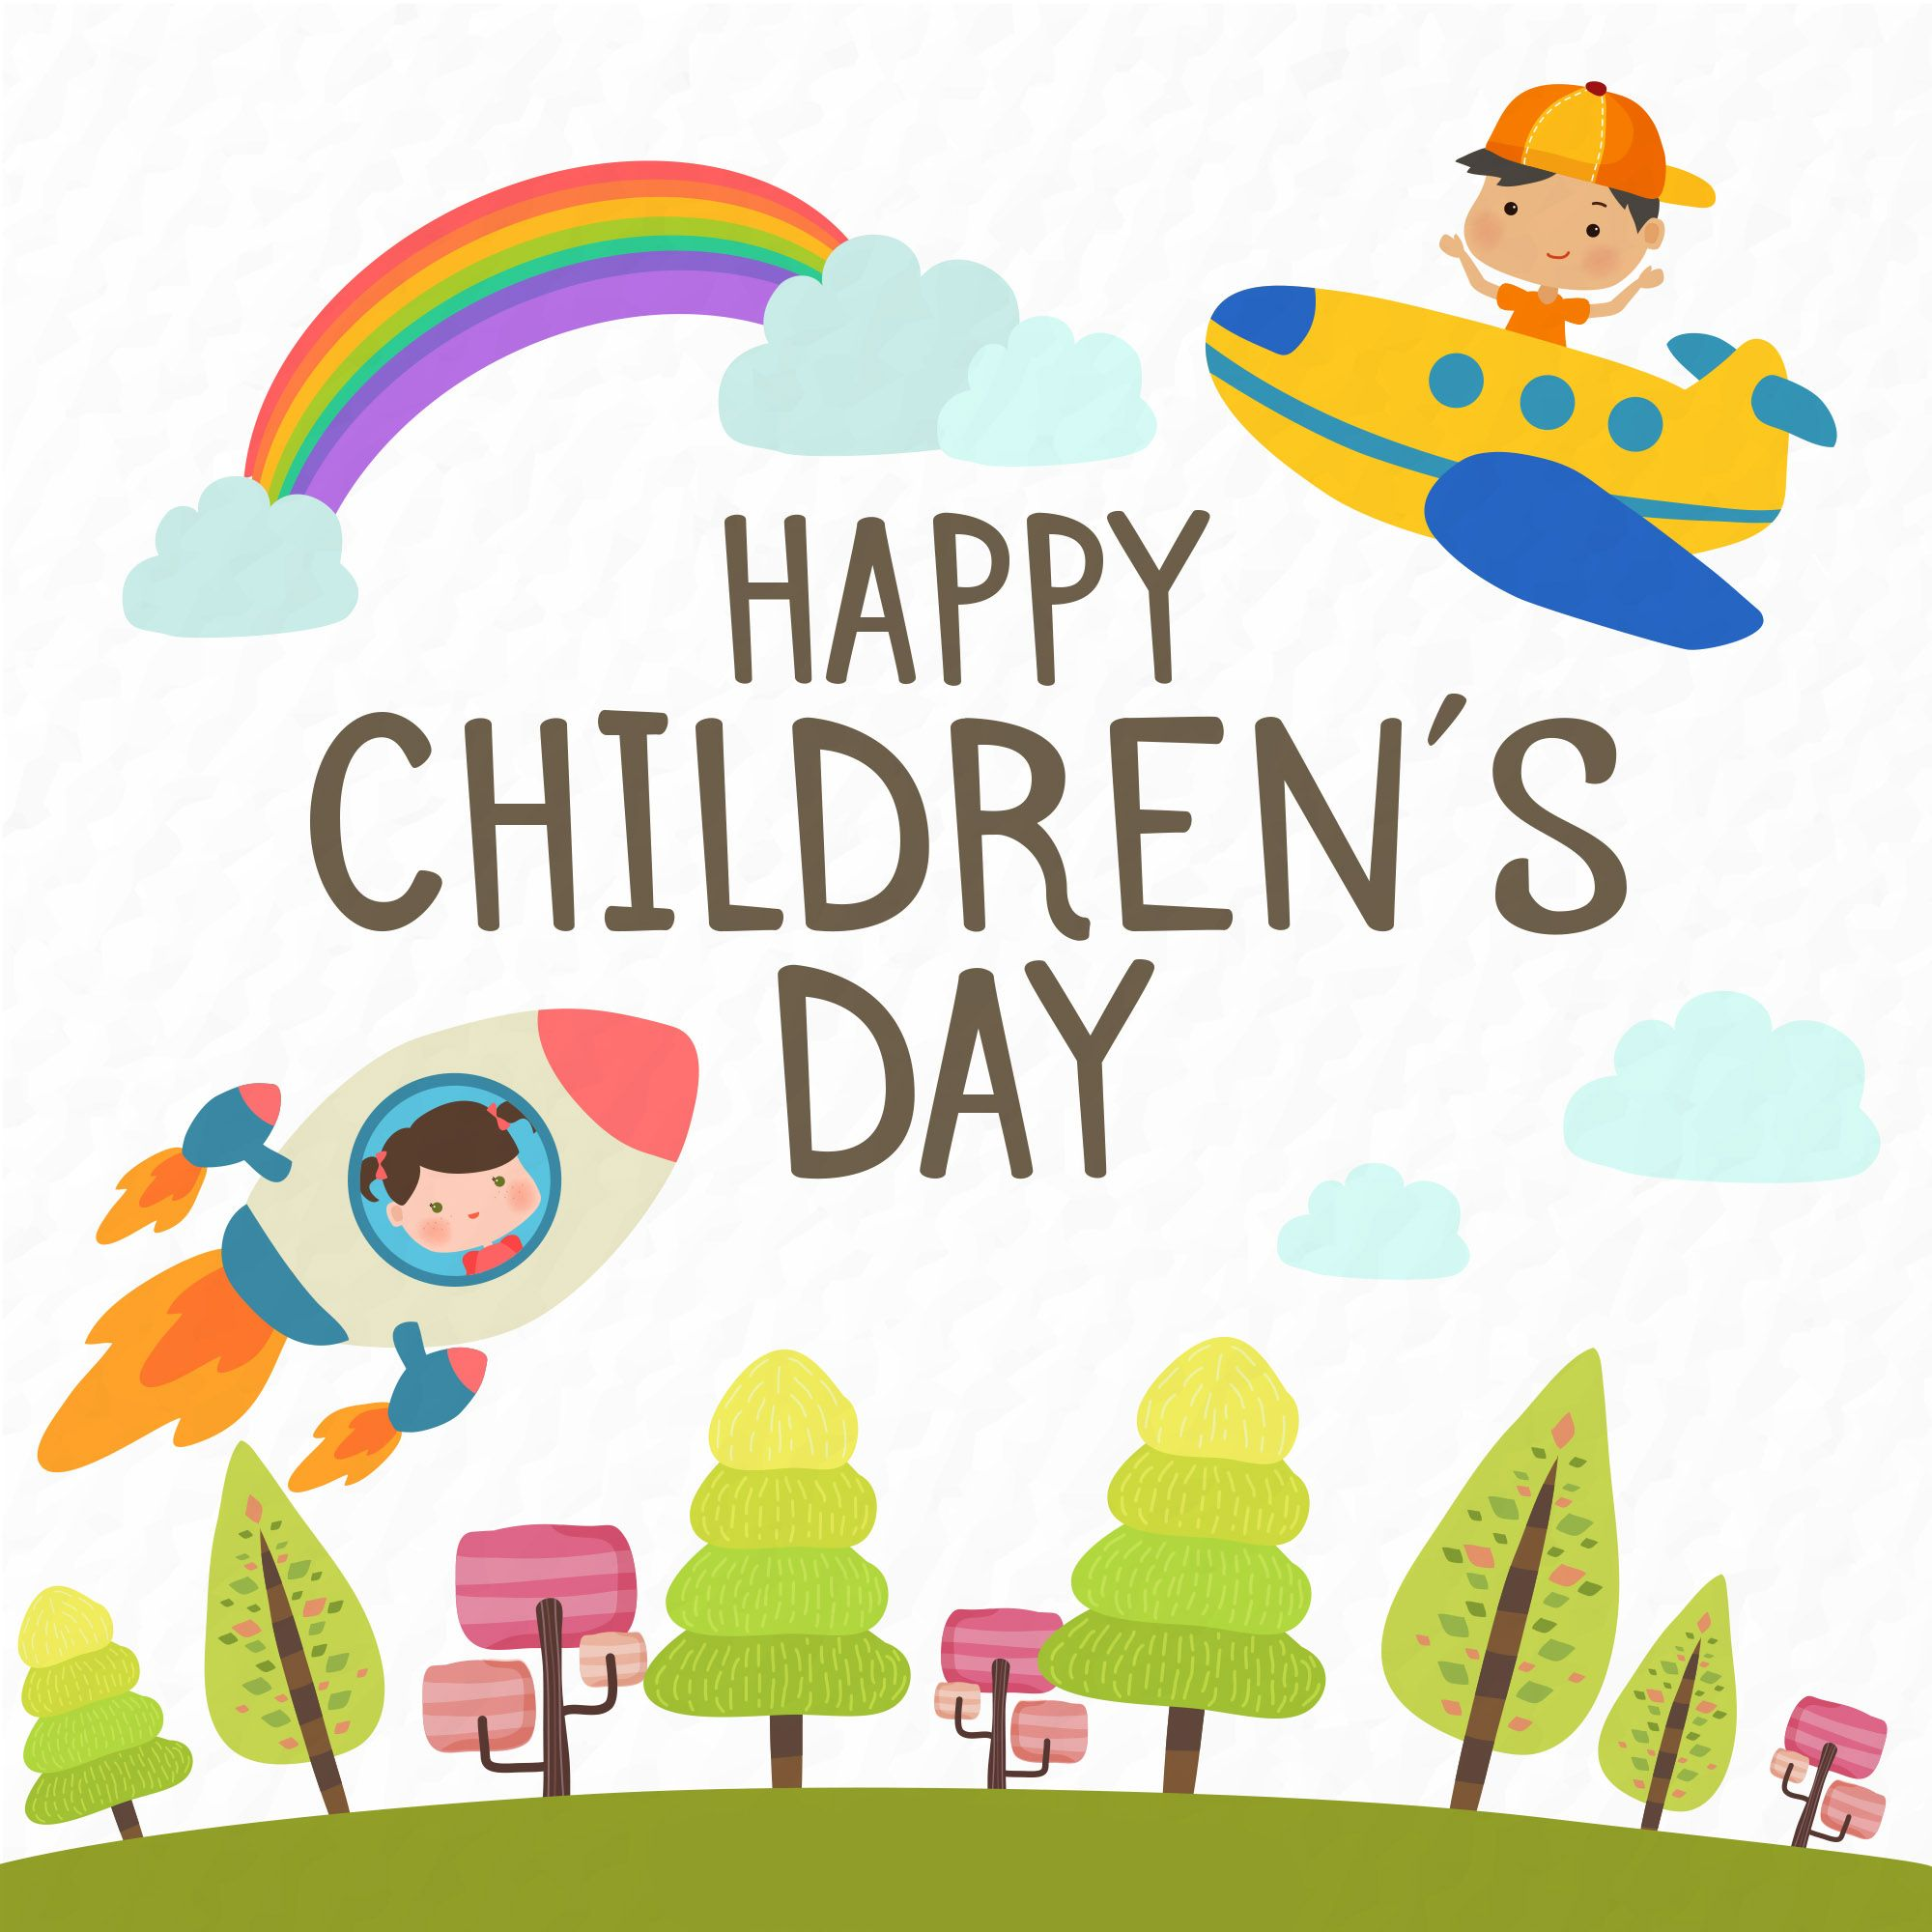 ITS HERE Happy WorldChildrensDay Today Foreverychild In The World We Wish Education Love